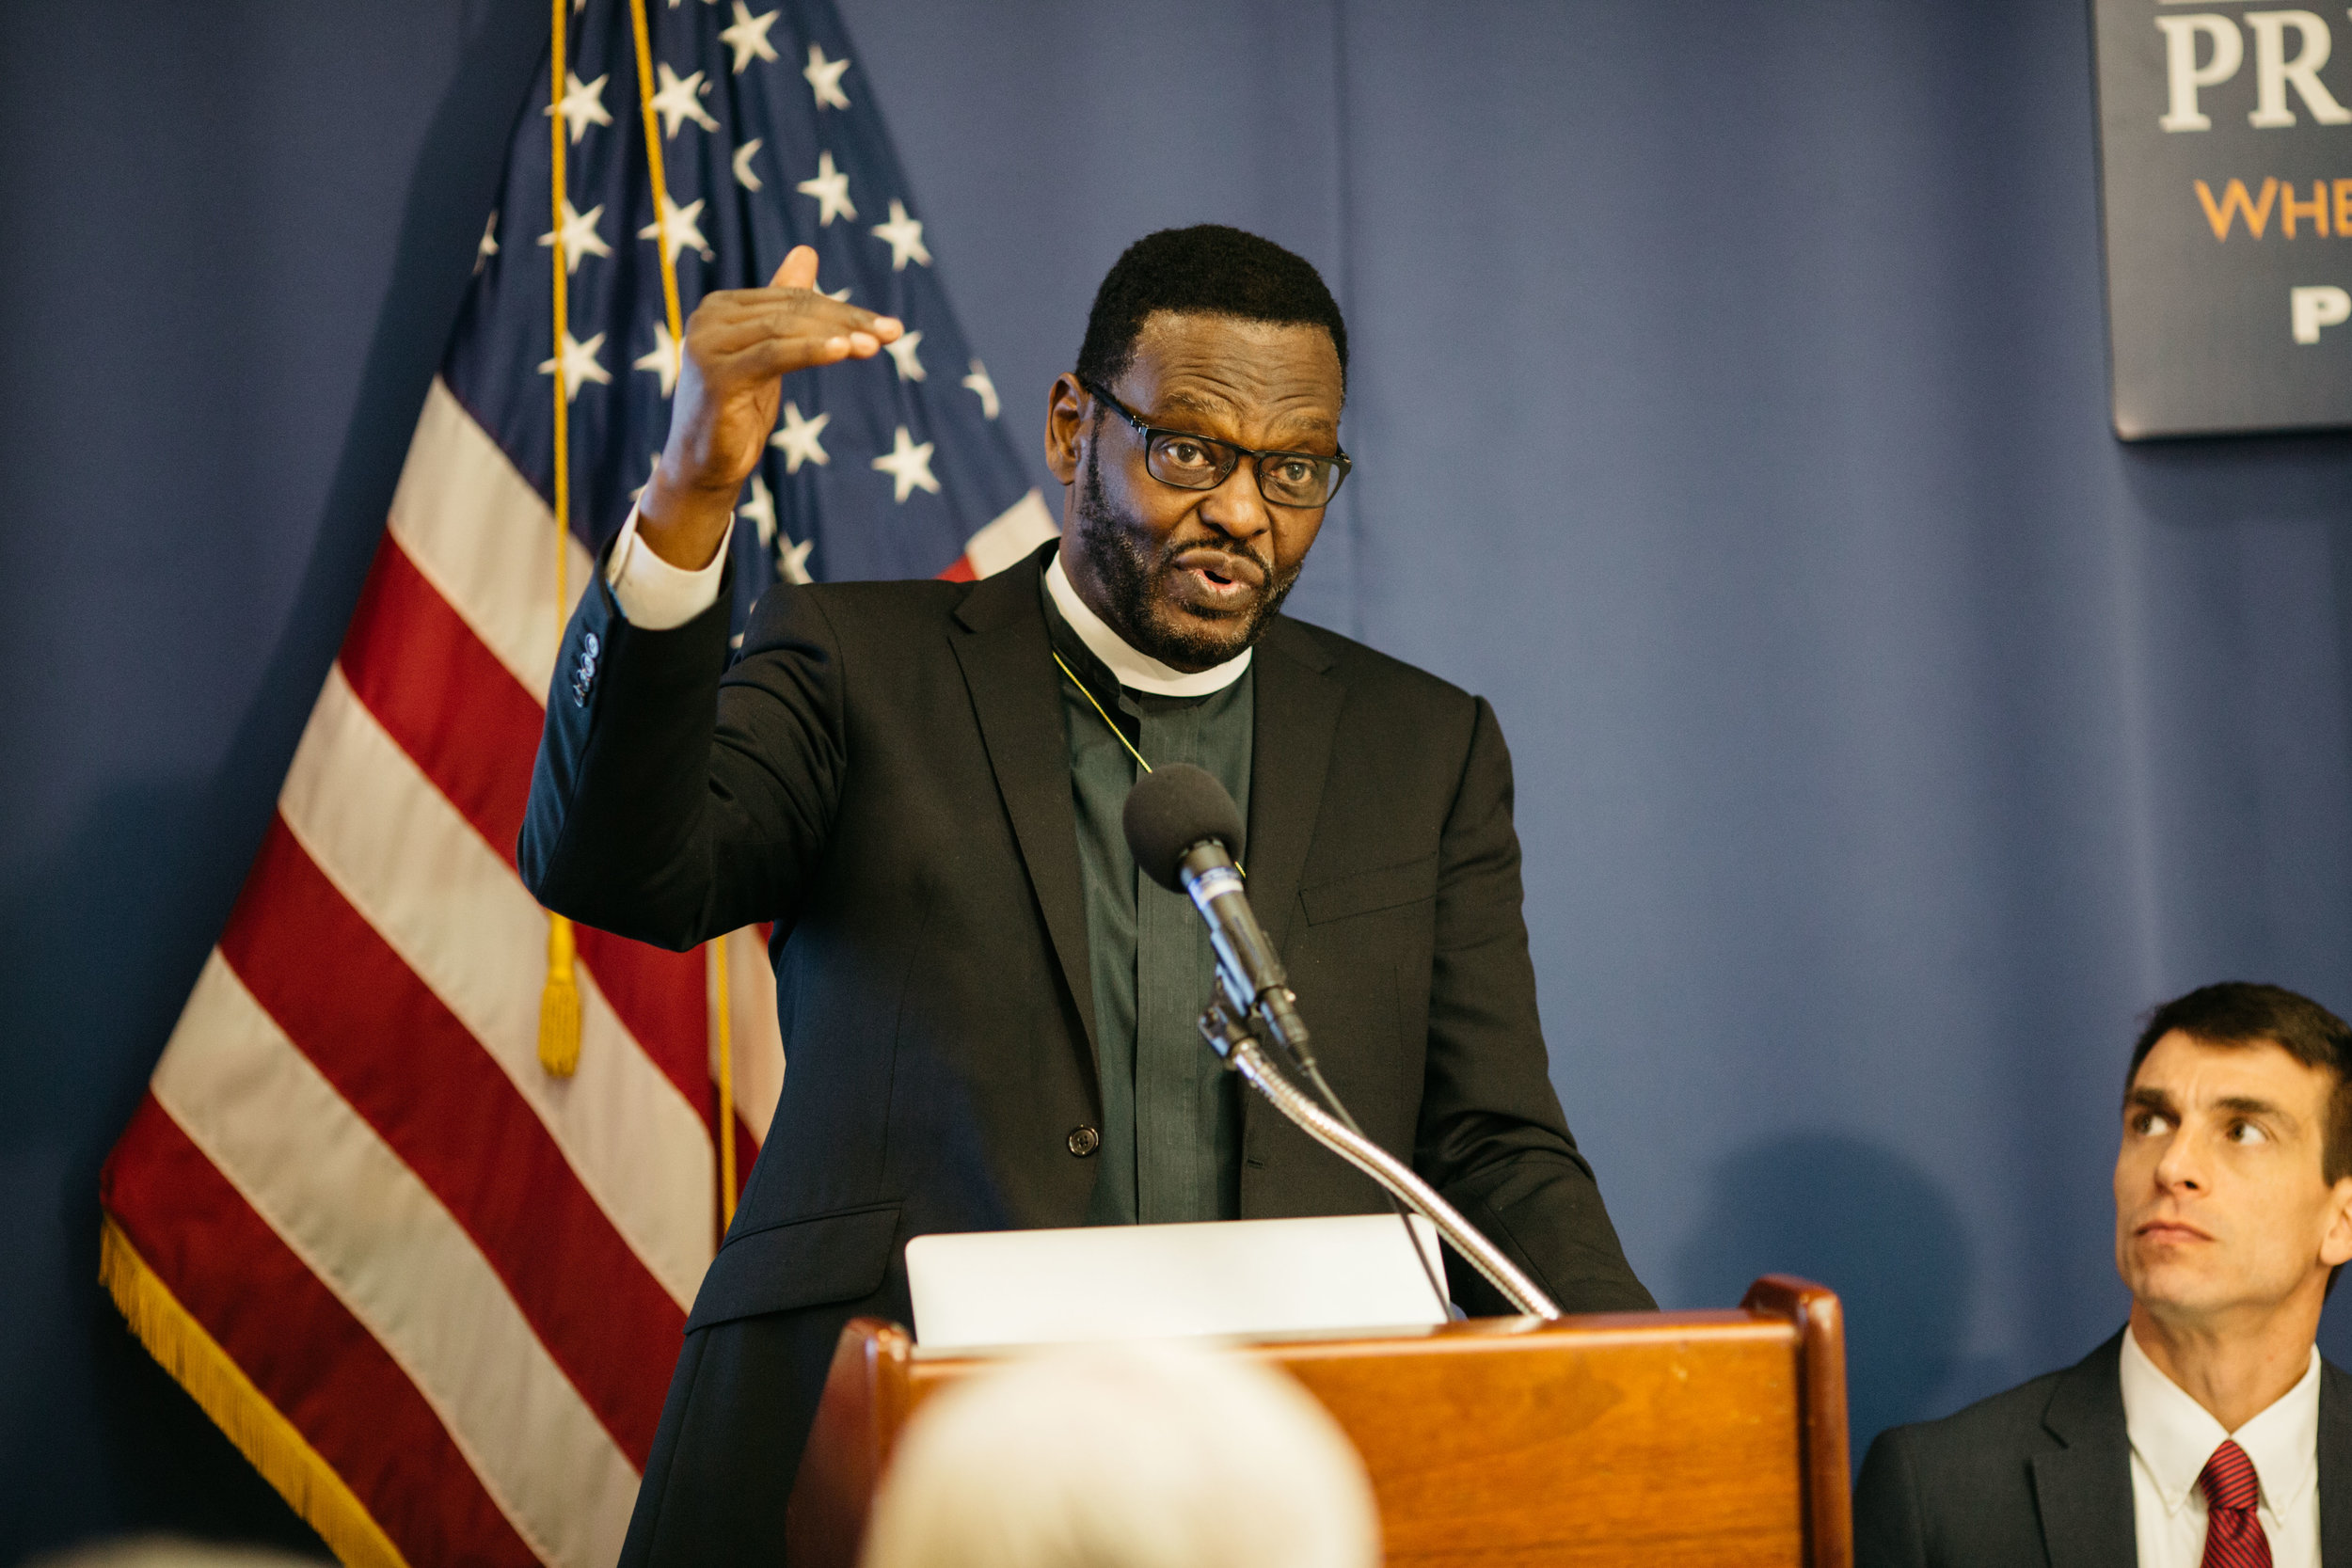 Bishop Harry Jackson provides thoughts on behalf of the African American community on the findings of the Evangelicals and Israel study conducted by LifeWay Research and sponsored by Chosen People Ministries and New York Times bestselling author Joel C. Rosenberg.